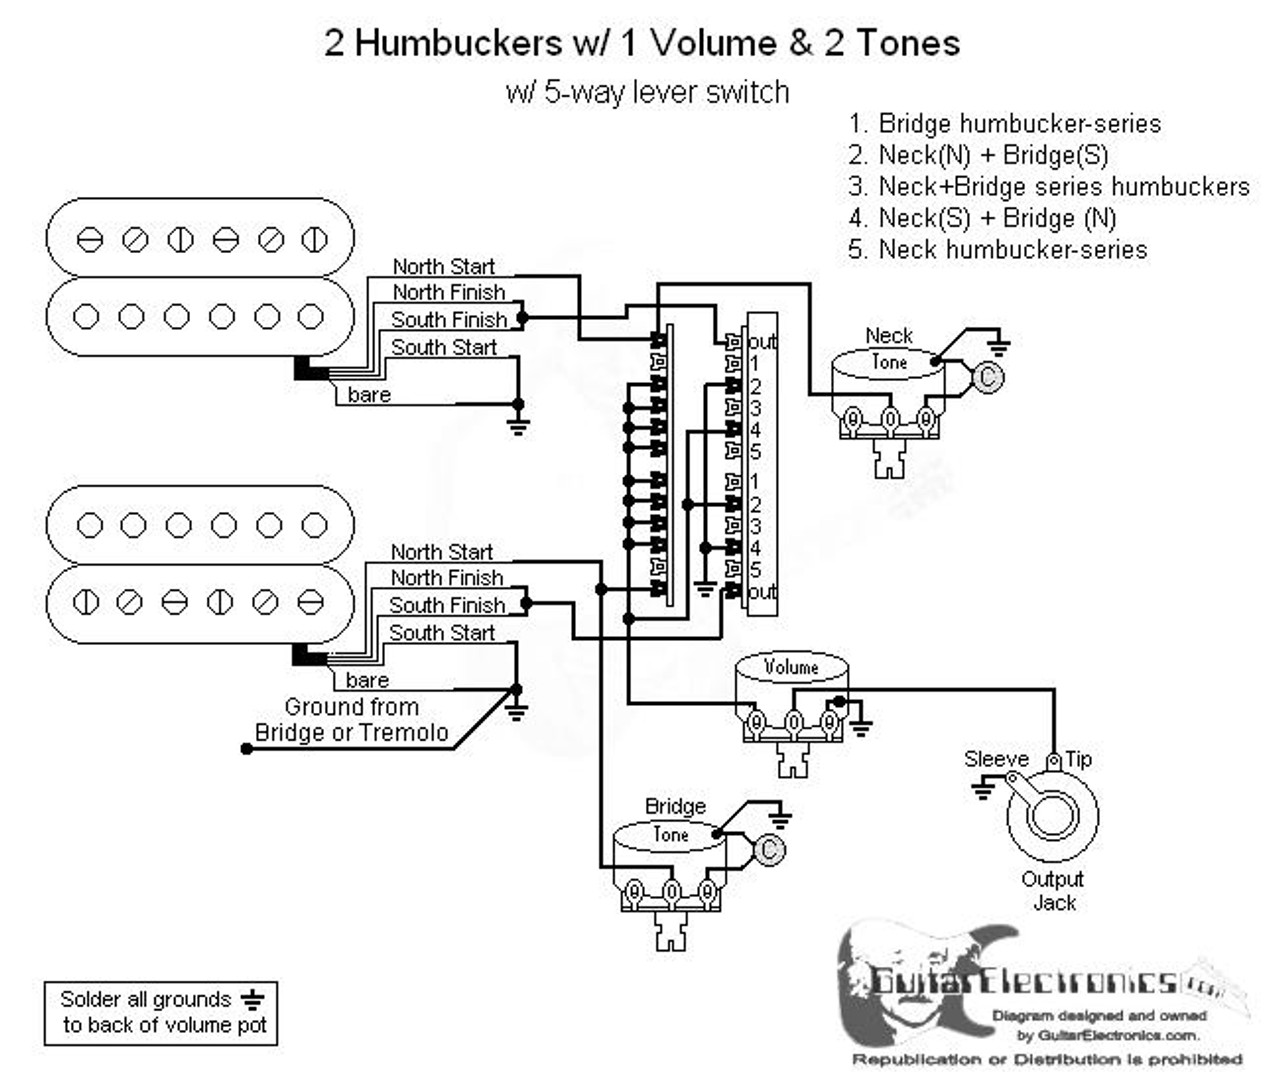 [DIAGRAM_38EU]  2 Humbuckers/5-Way Lever Switch/1 Volume/2 Tones/05 | Fender 5 Way Super Switch Humbucker Pickup Wiring Diagram |  | Guitar Electronics